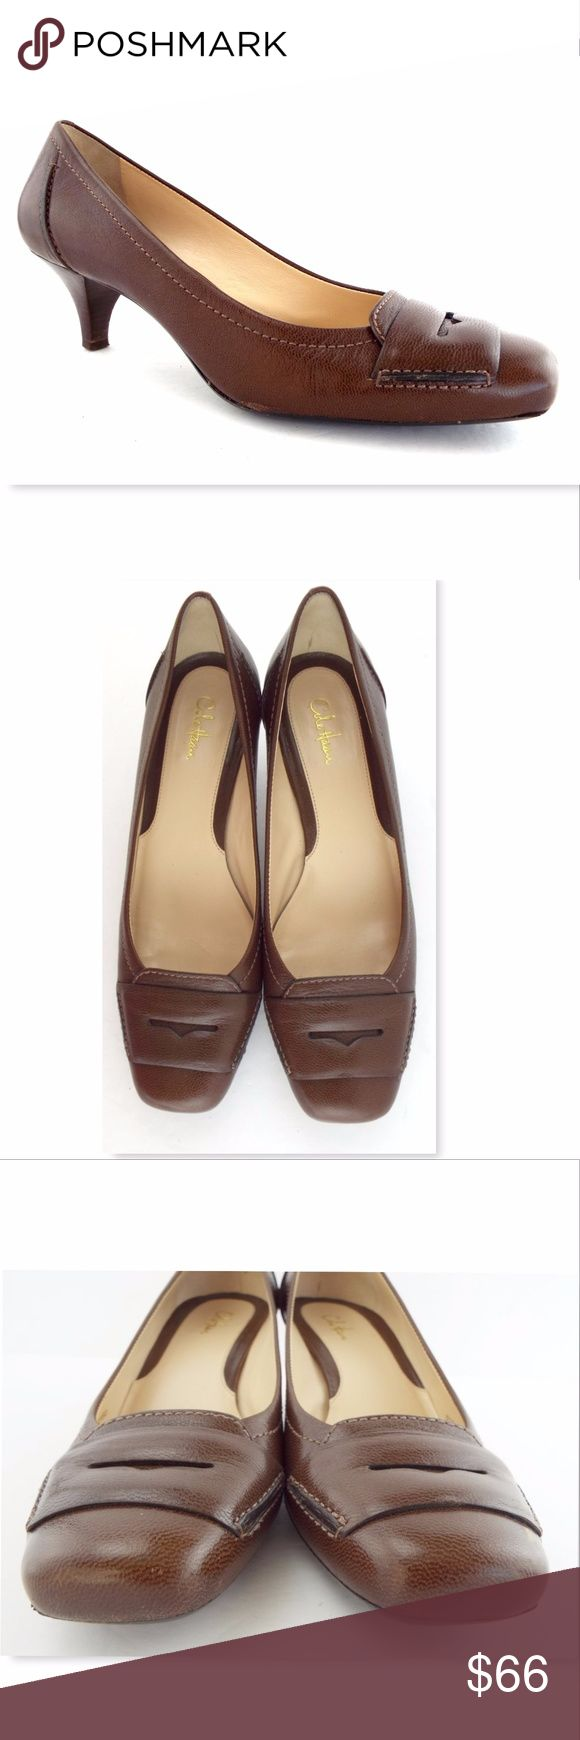 COLE HAAN Size 8.5 Brown Penny Loafer Pumps Heels COLE HAAN Authentic! Brown Leather Snub Nosed Pumps Size 8 1/2 Medium Very light wear and excellent looking! Made in Brazil All actual photos of the item. Cole Haan Shoes Heels